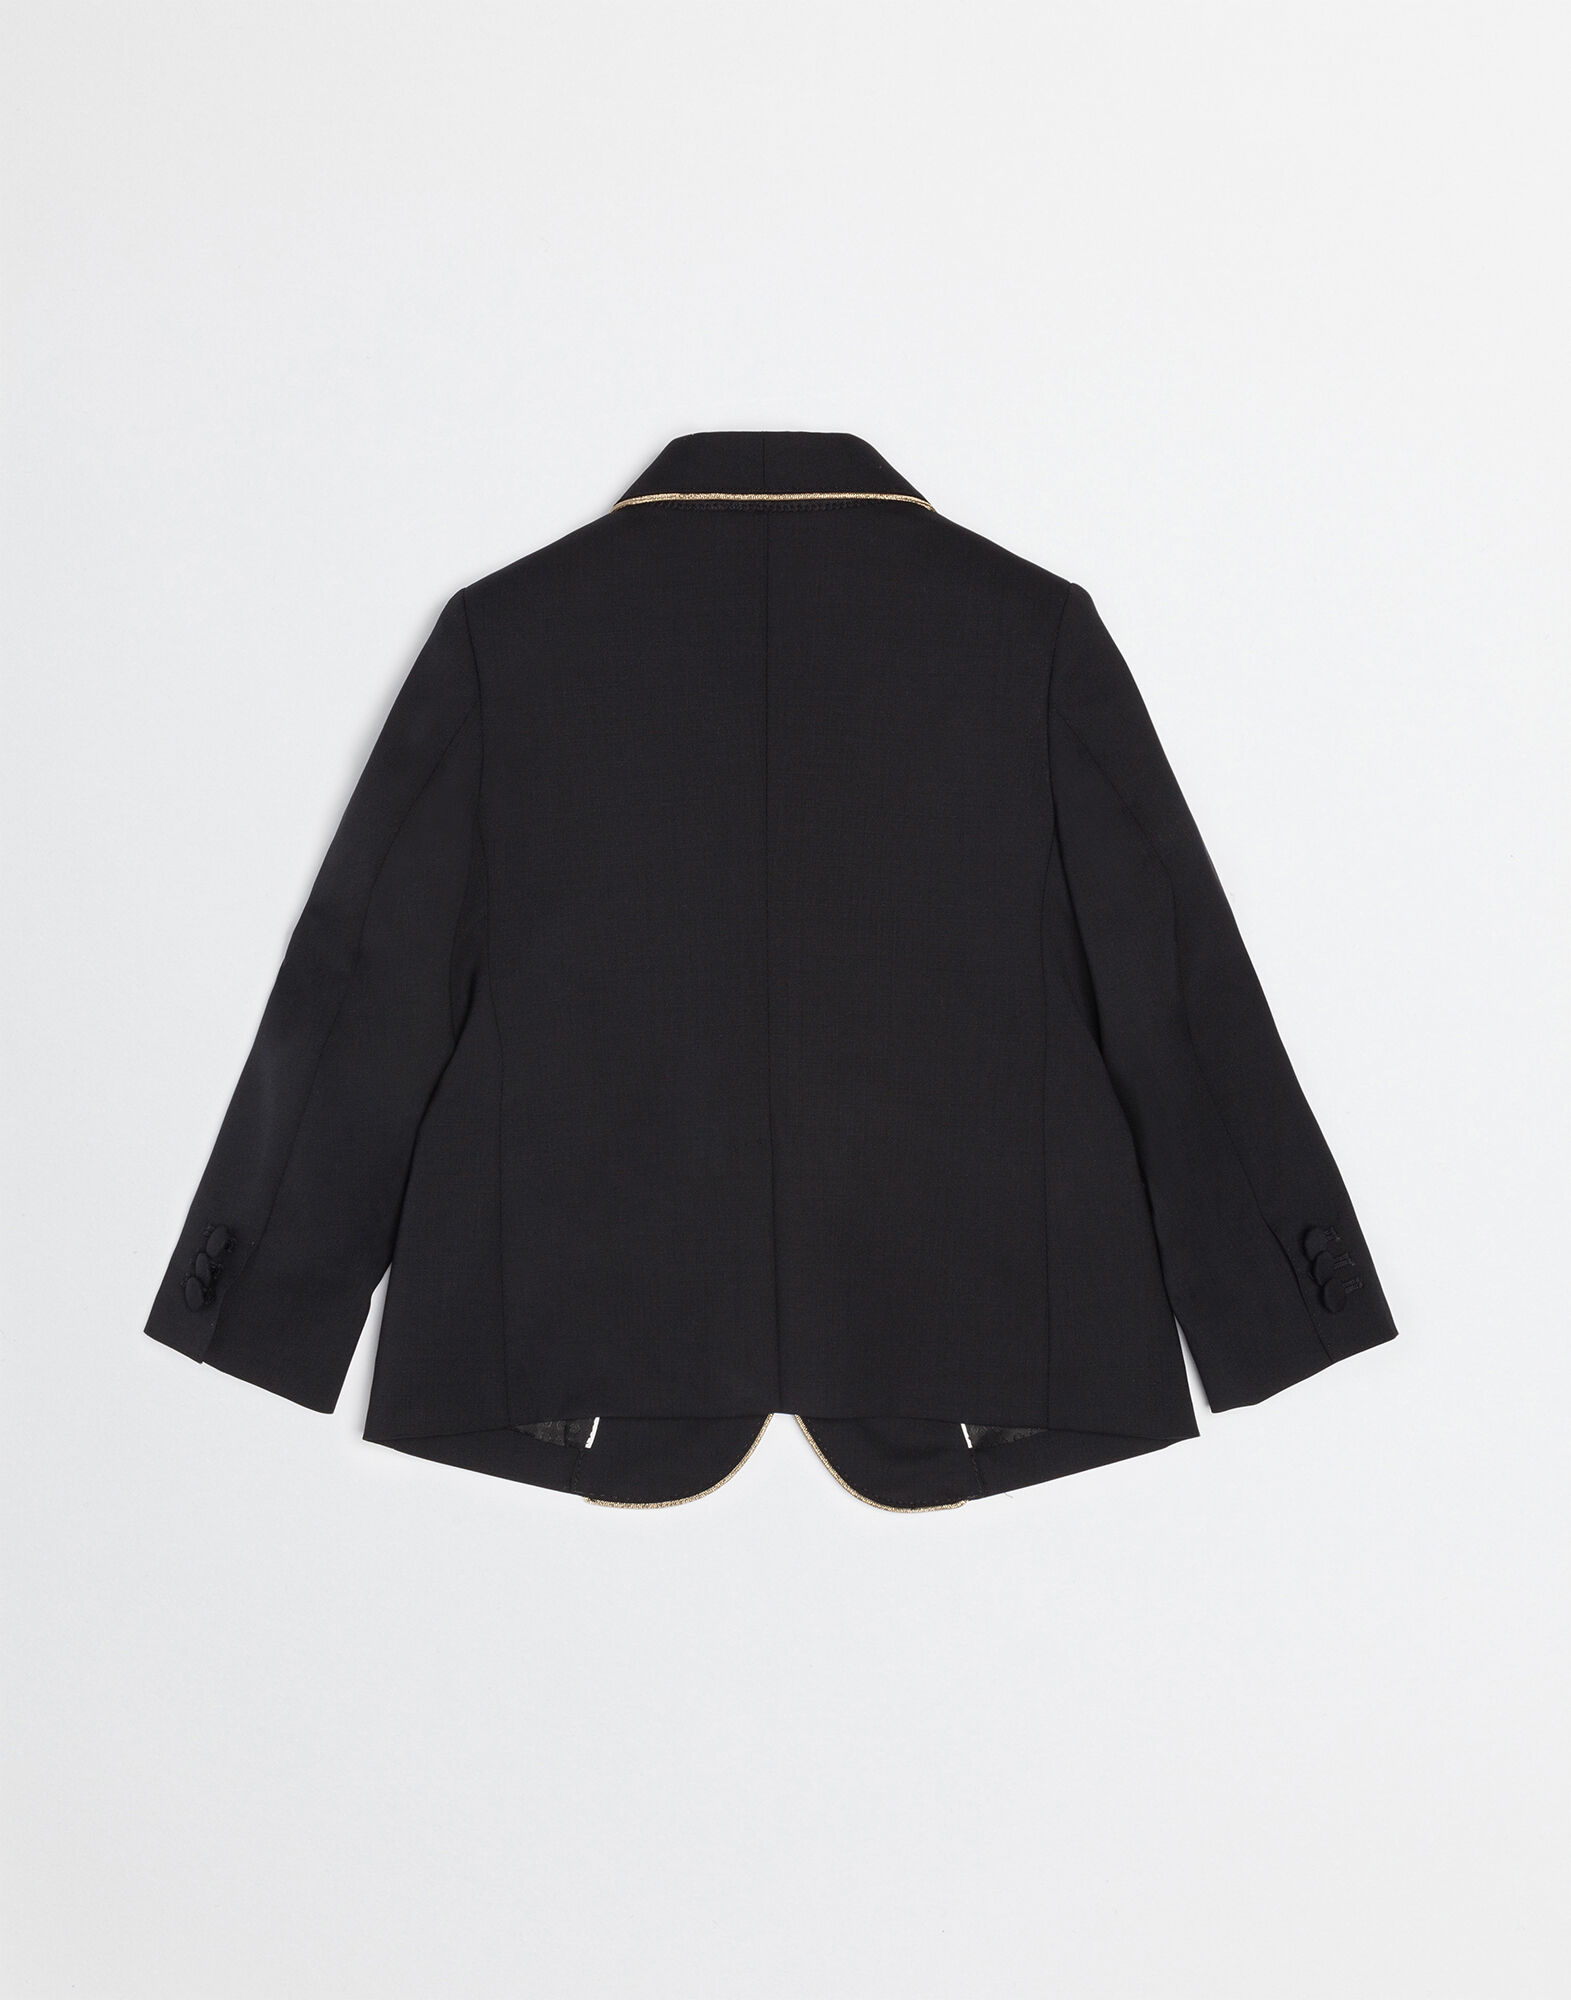 WOOL CLOTH JACKET WITH EMBROIDERY